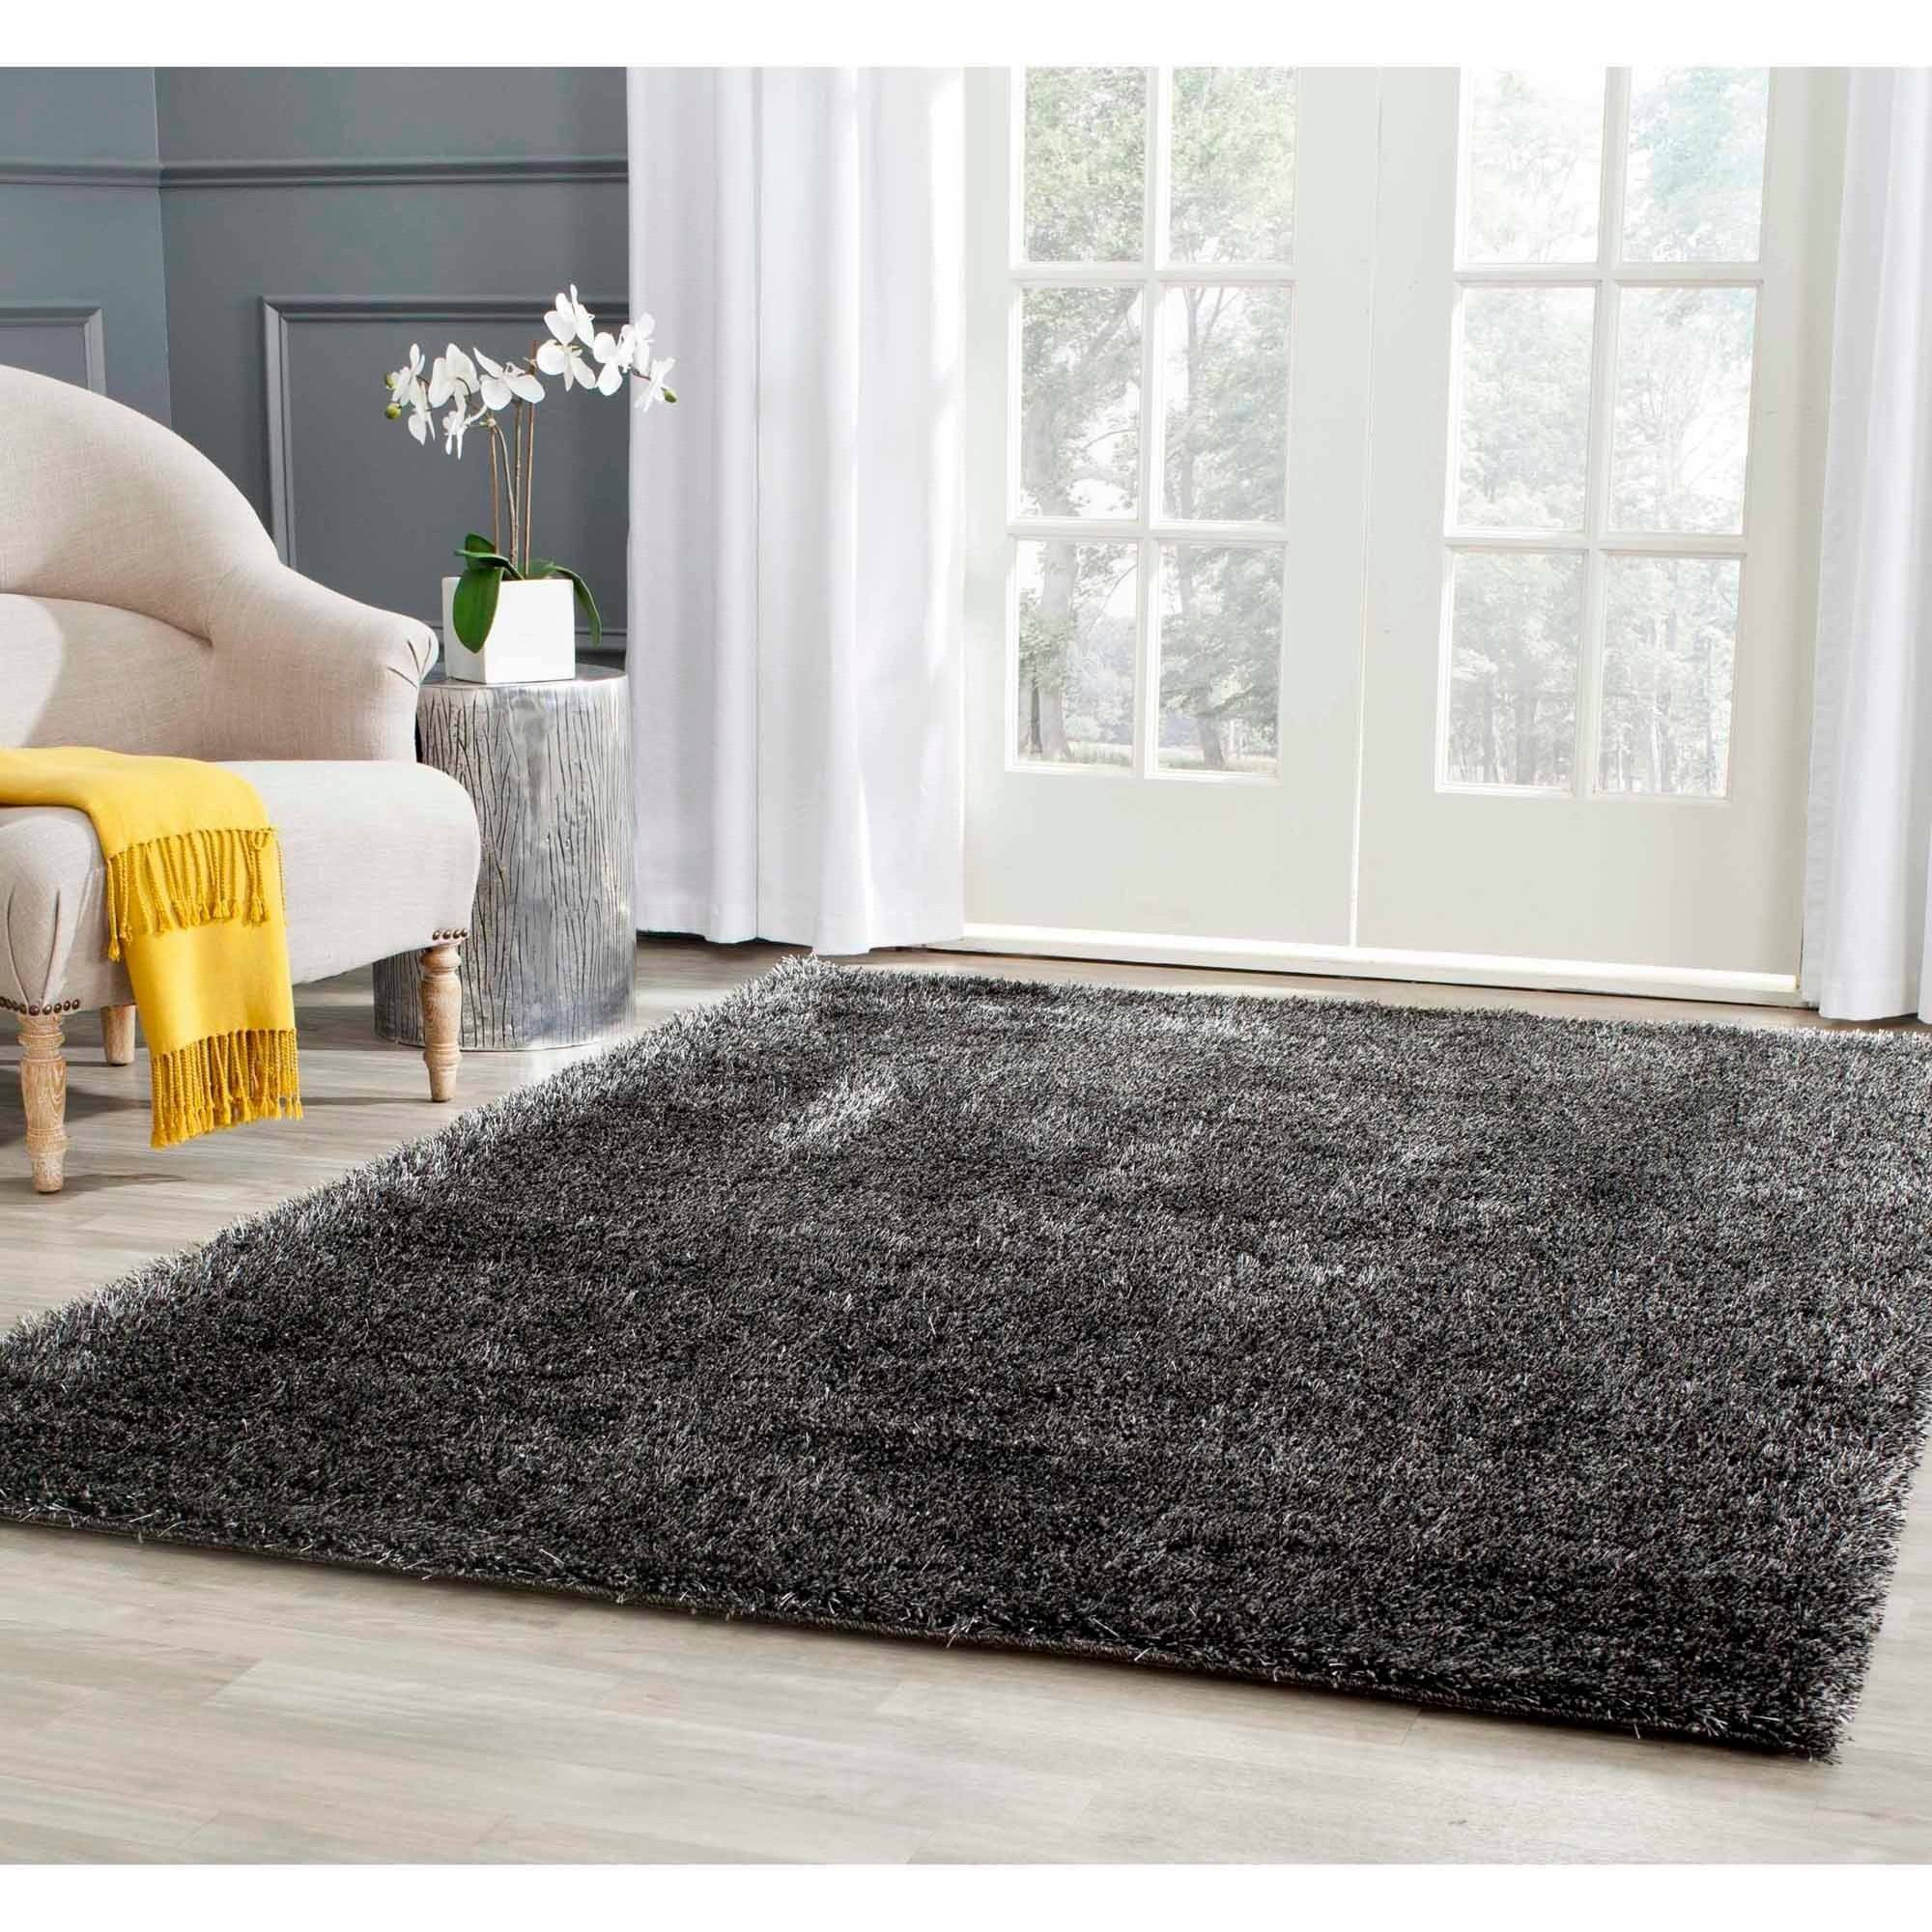 Safavieh Charlotte Power-Loomed Shag Area Rug